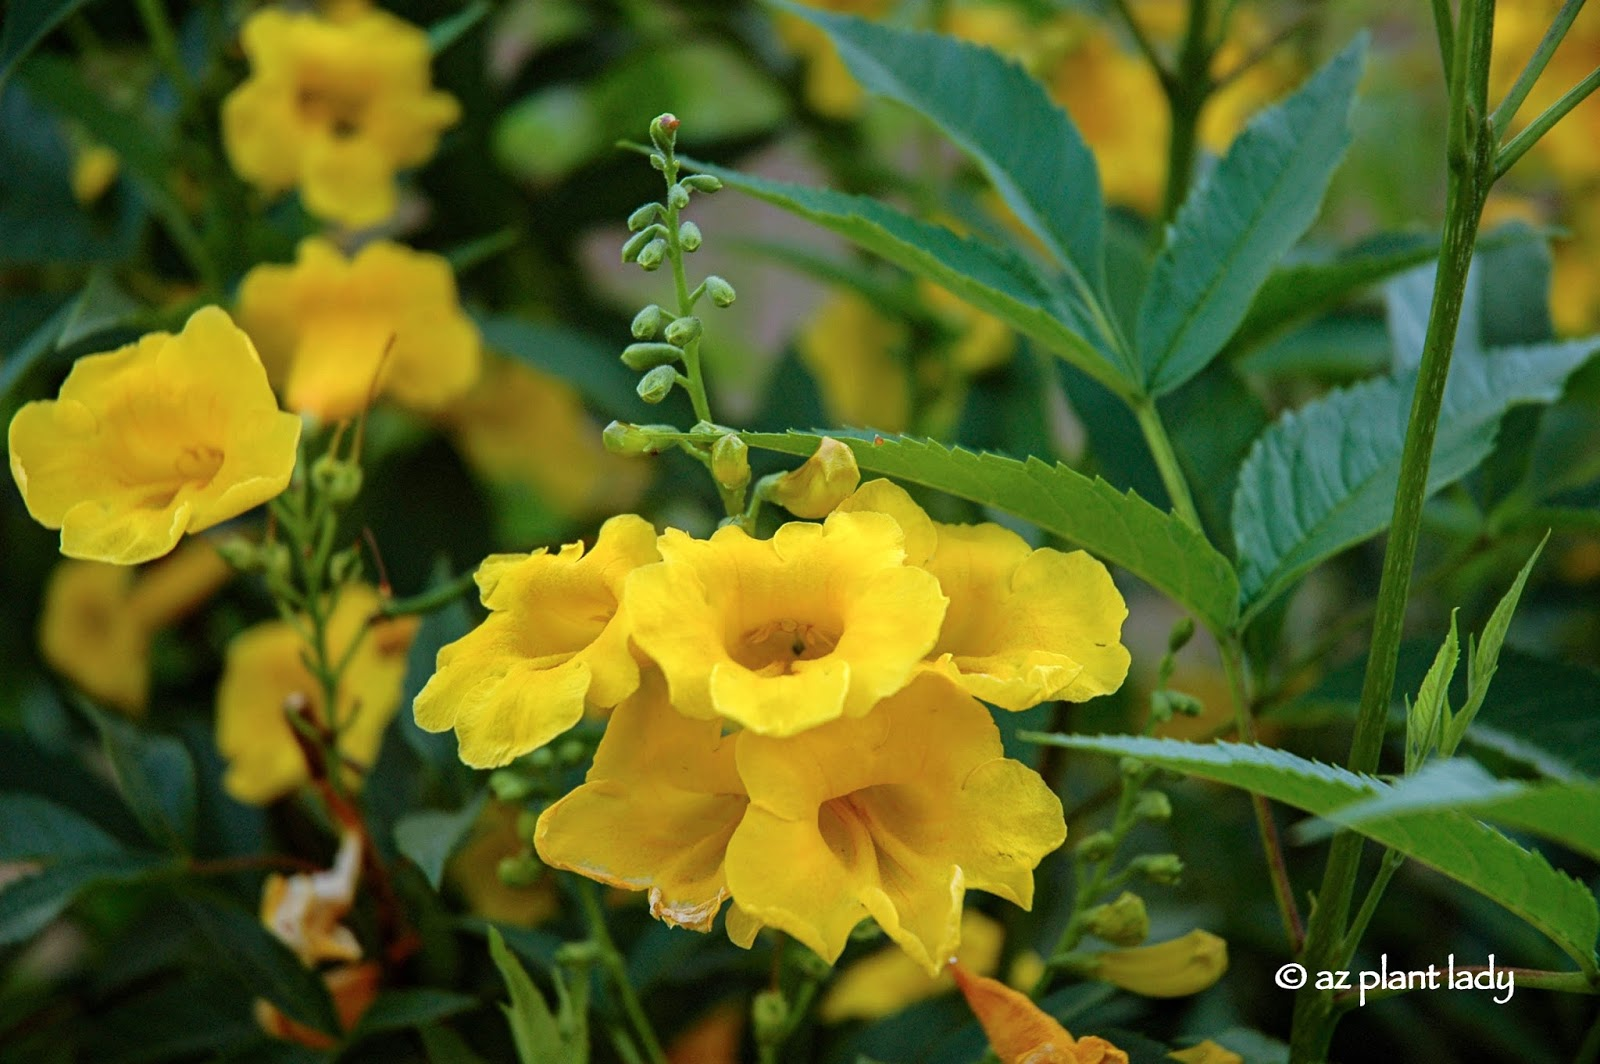 Drought tolerant yellow bells for warm season color uses because of its size this large shrub makes a great backdrop plant i have used it to screen fences sheds and also planted it up against the house mightylinksfo